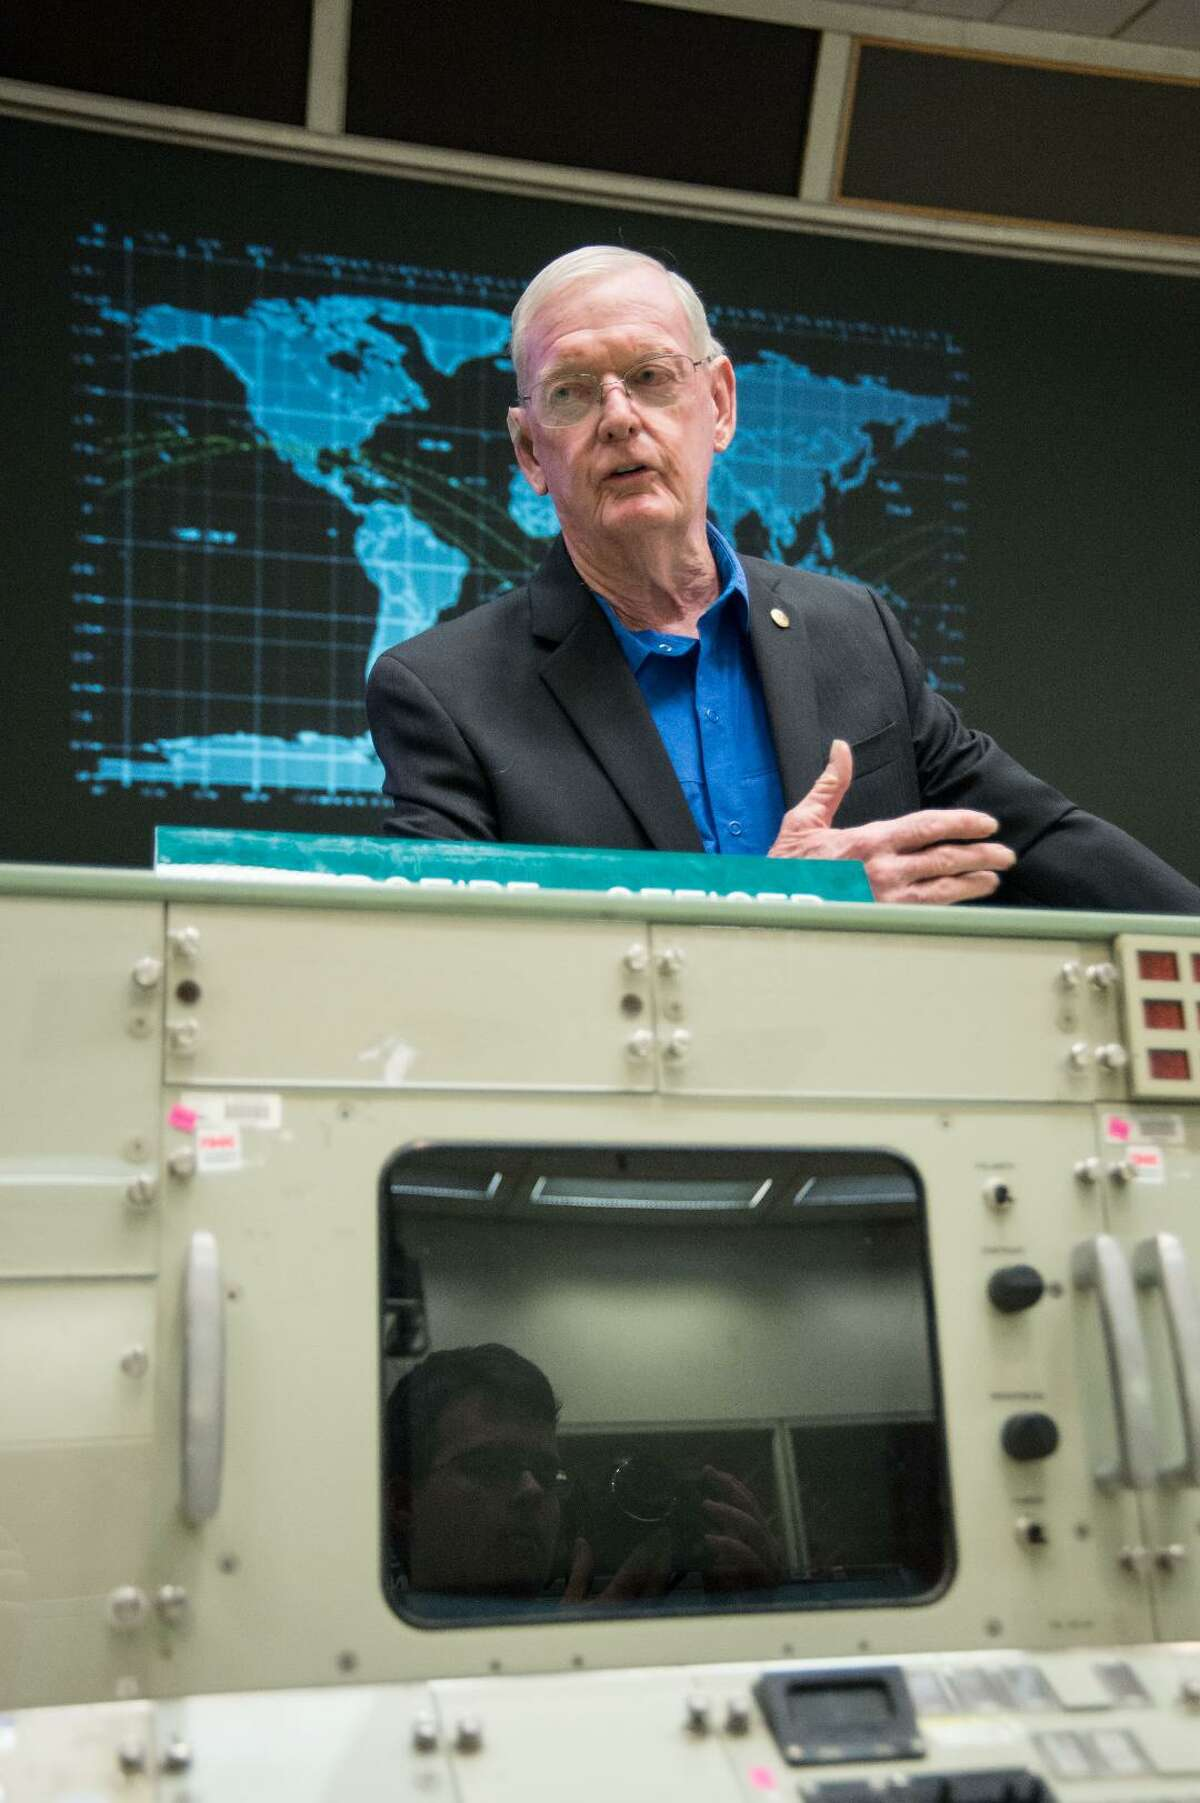 Former NASA flight director Glynn Lunney spoke to a group of high school students in the old Apollo Mission Control Center on July 28, 2015.